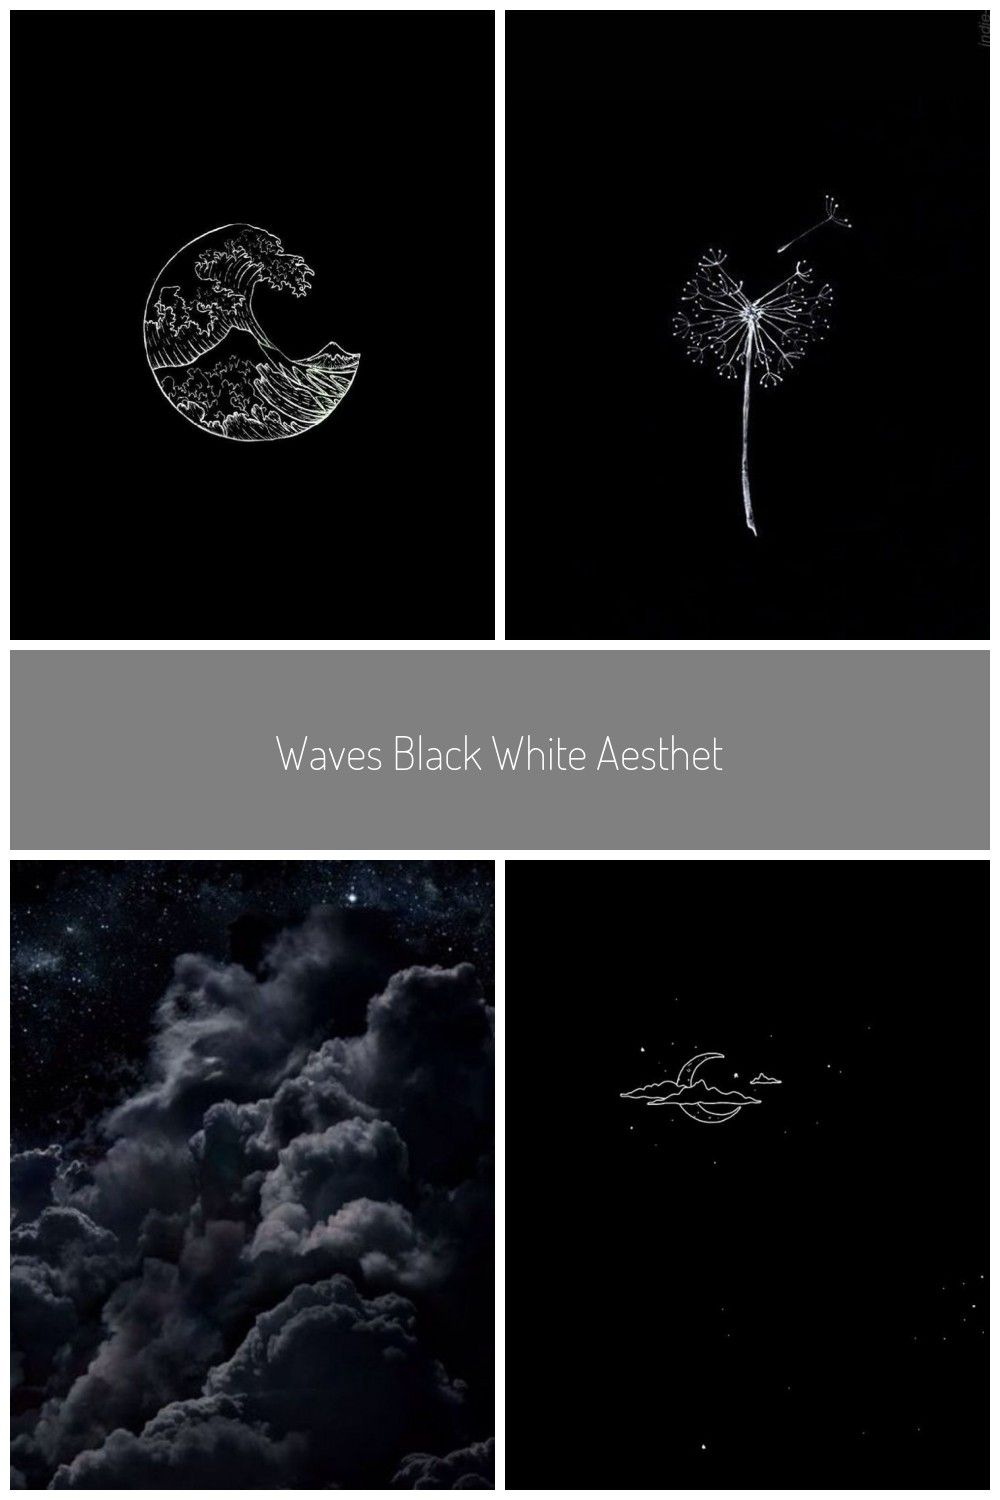 Waves Black White Aesthetic Tumblr Wallpaper Ae Ae Aesthetic Black Fondecra Grey Wallpaper Iphone Black And White Aesthetic Tumblr Iphone Wallpaper